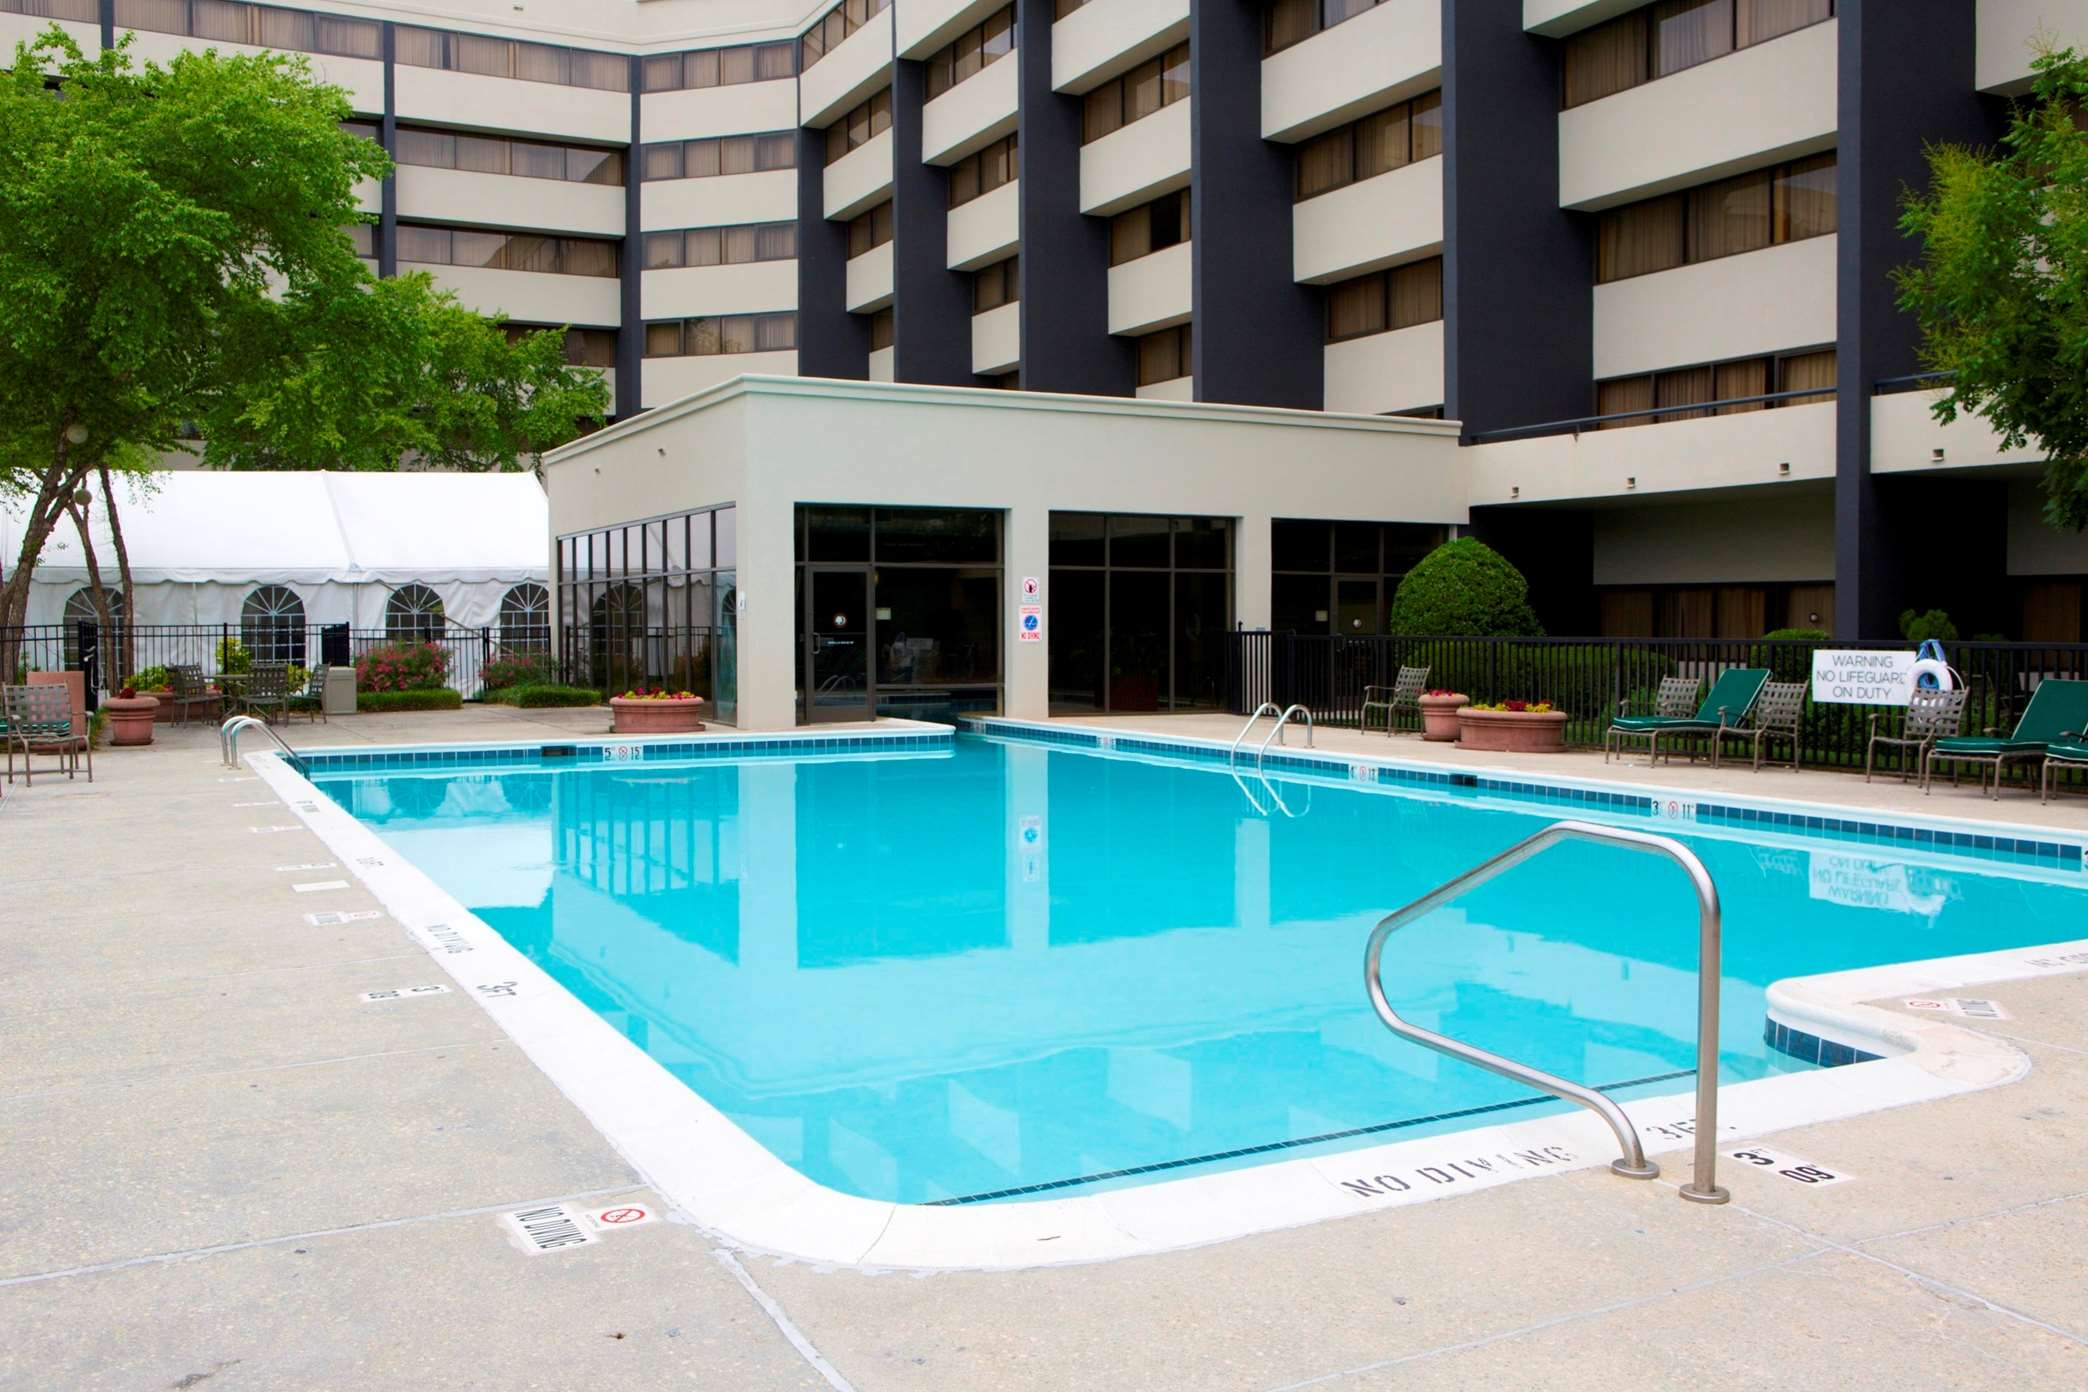 DoubleTree Suites by Hilton Hotel Raleigh - Durham image 3